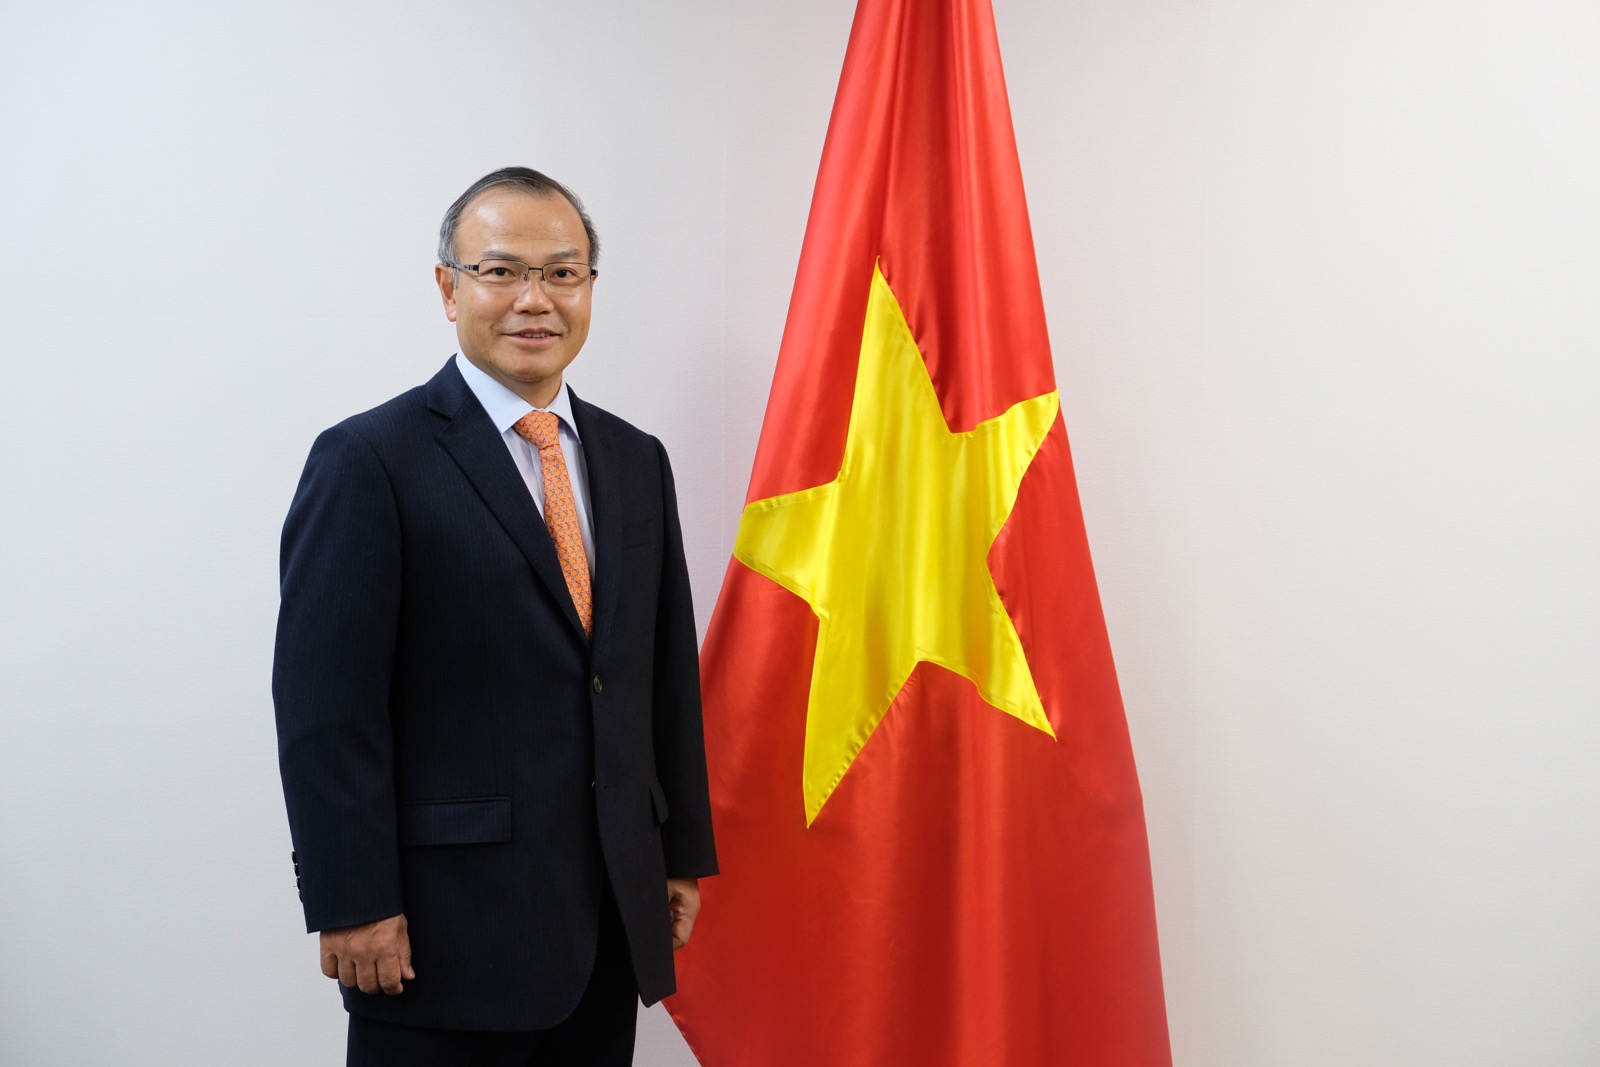 Vietnam's National Day: Vietnam Rapid growth points to stronger ties ahead